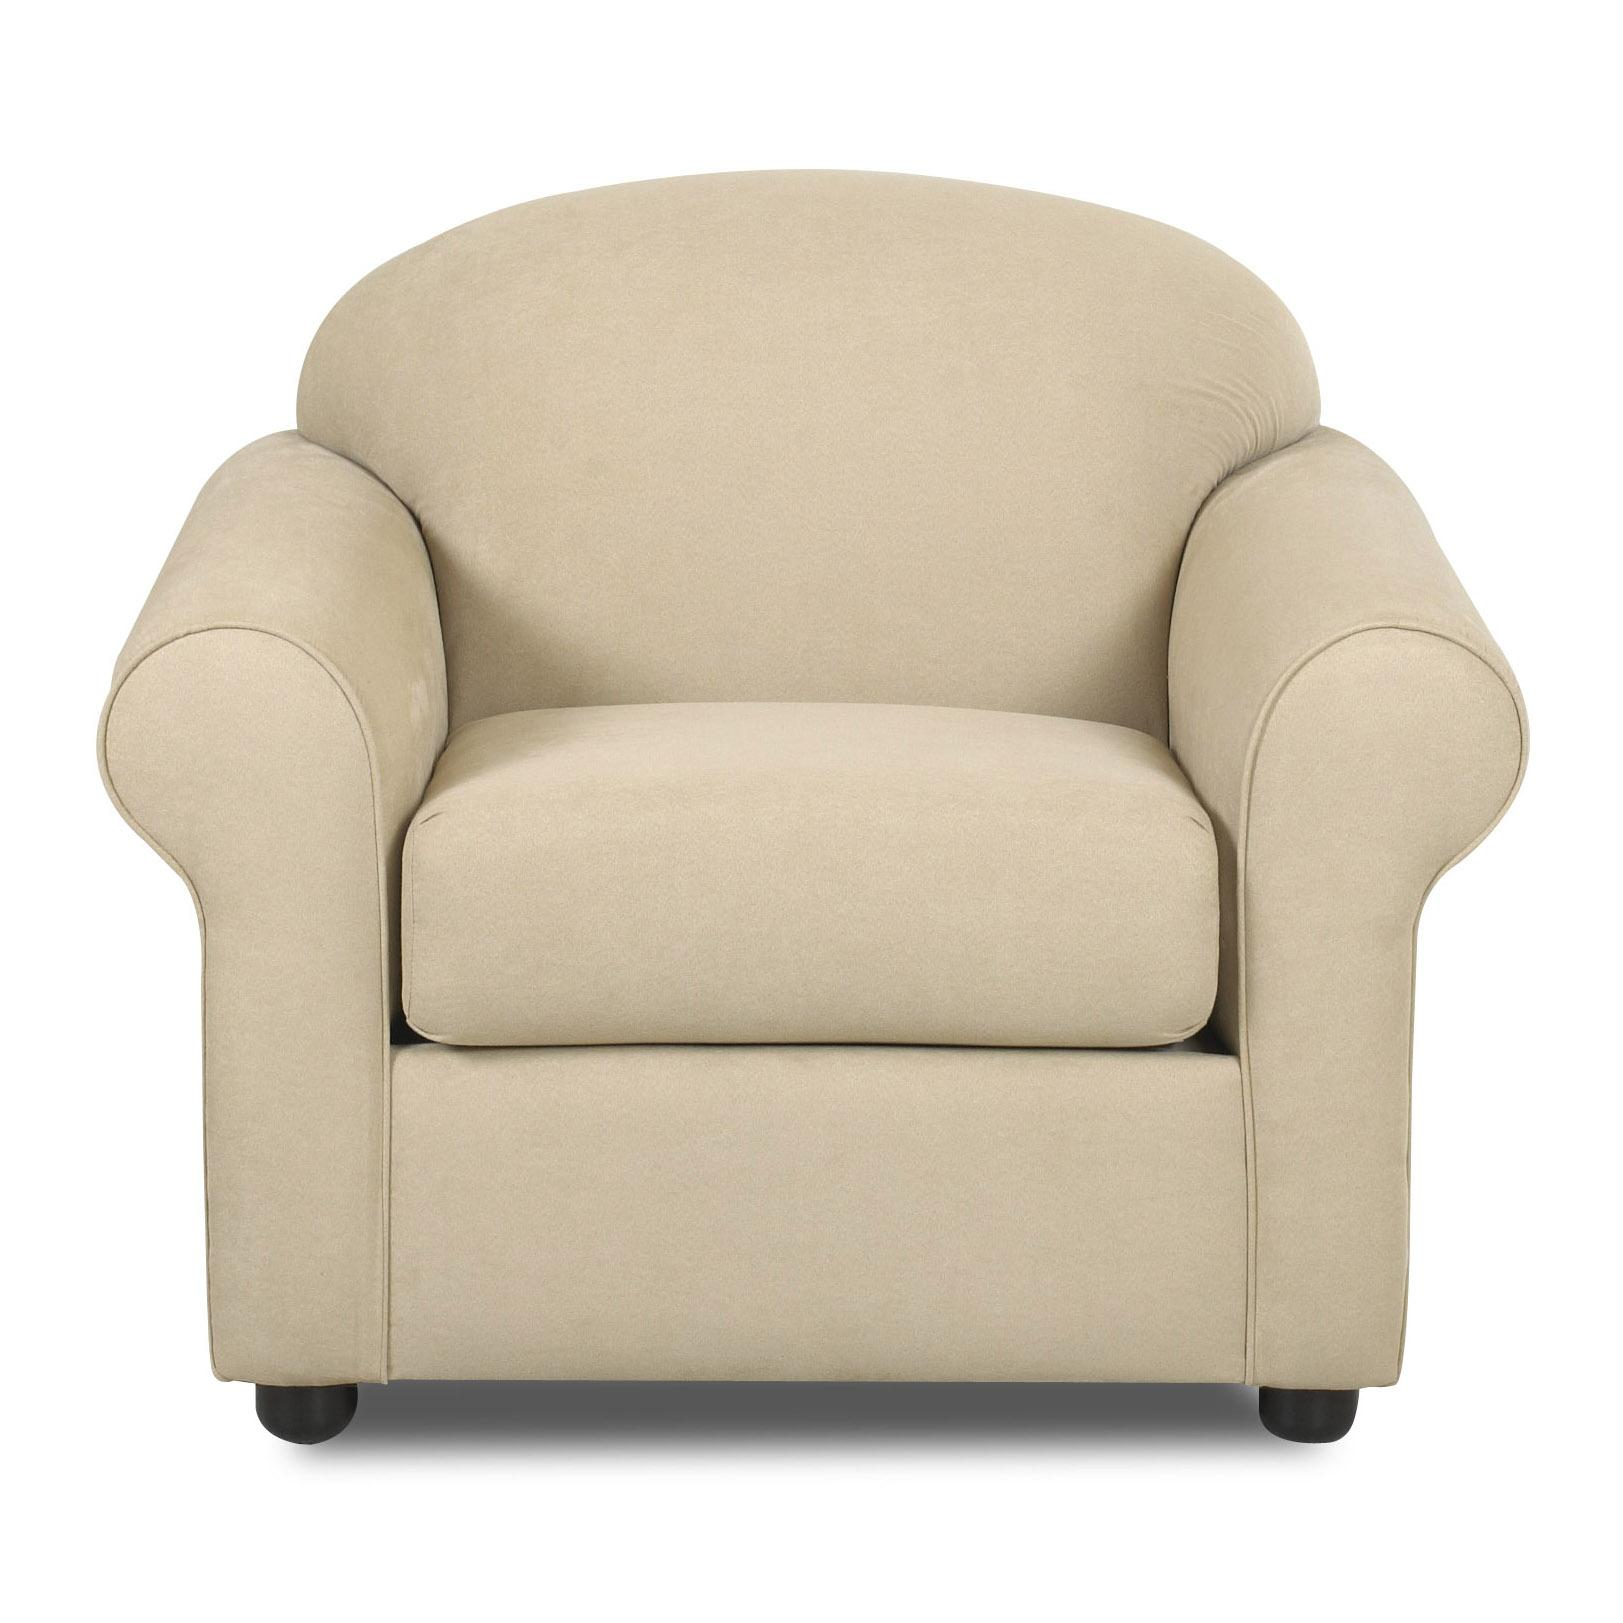 Klaussner Possibilities Low Profile Chair  Value City